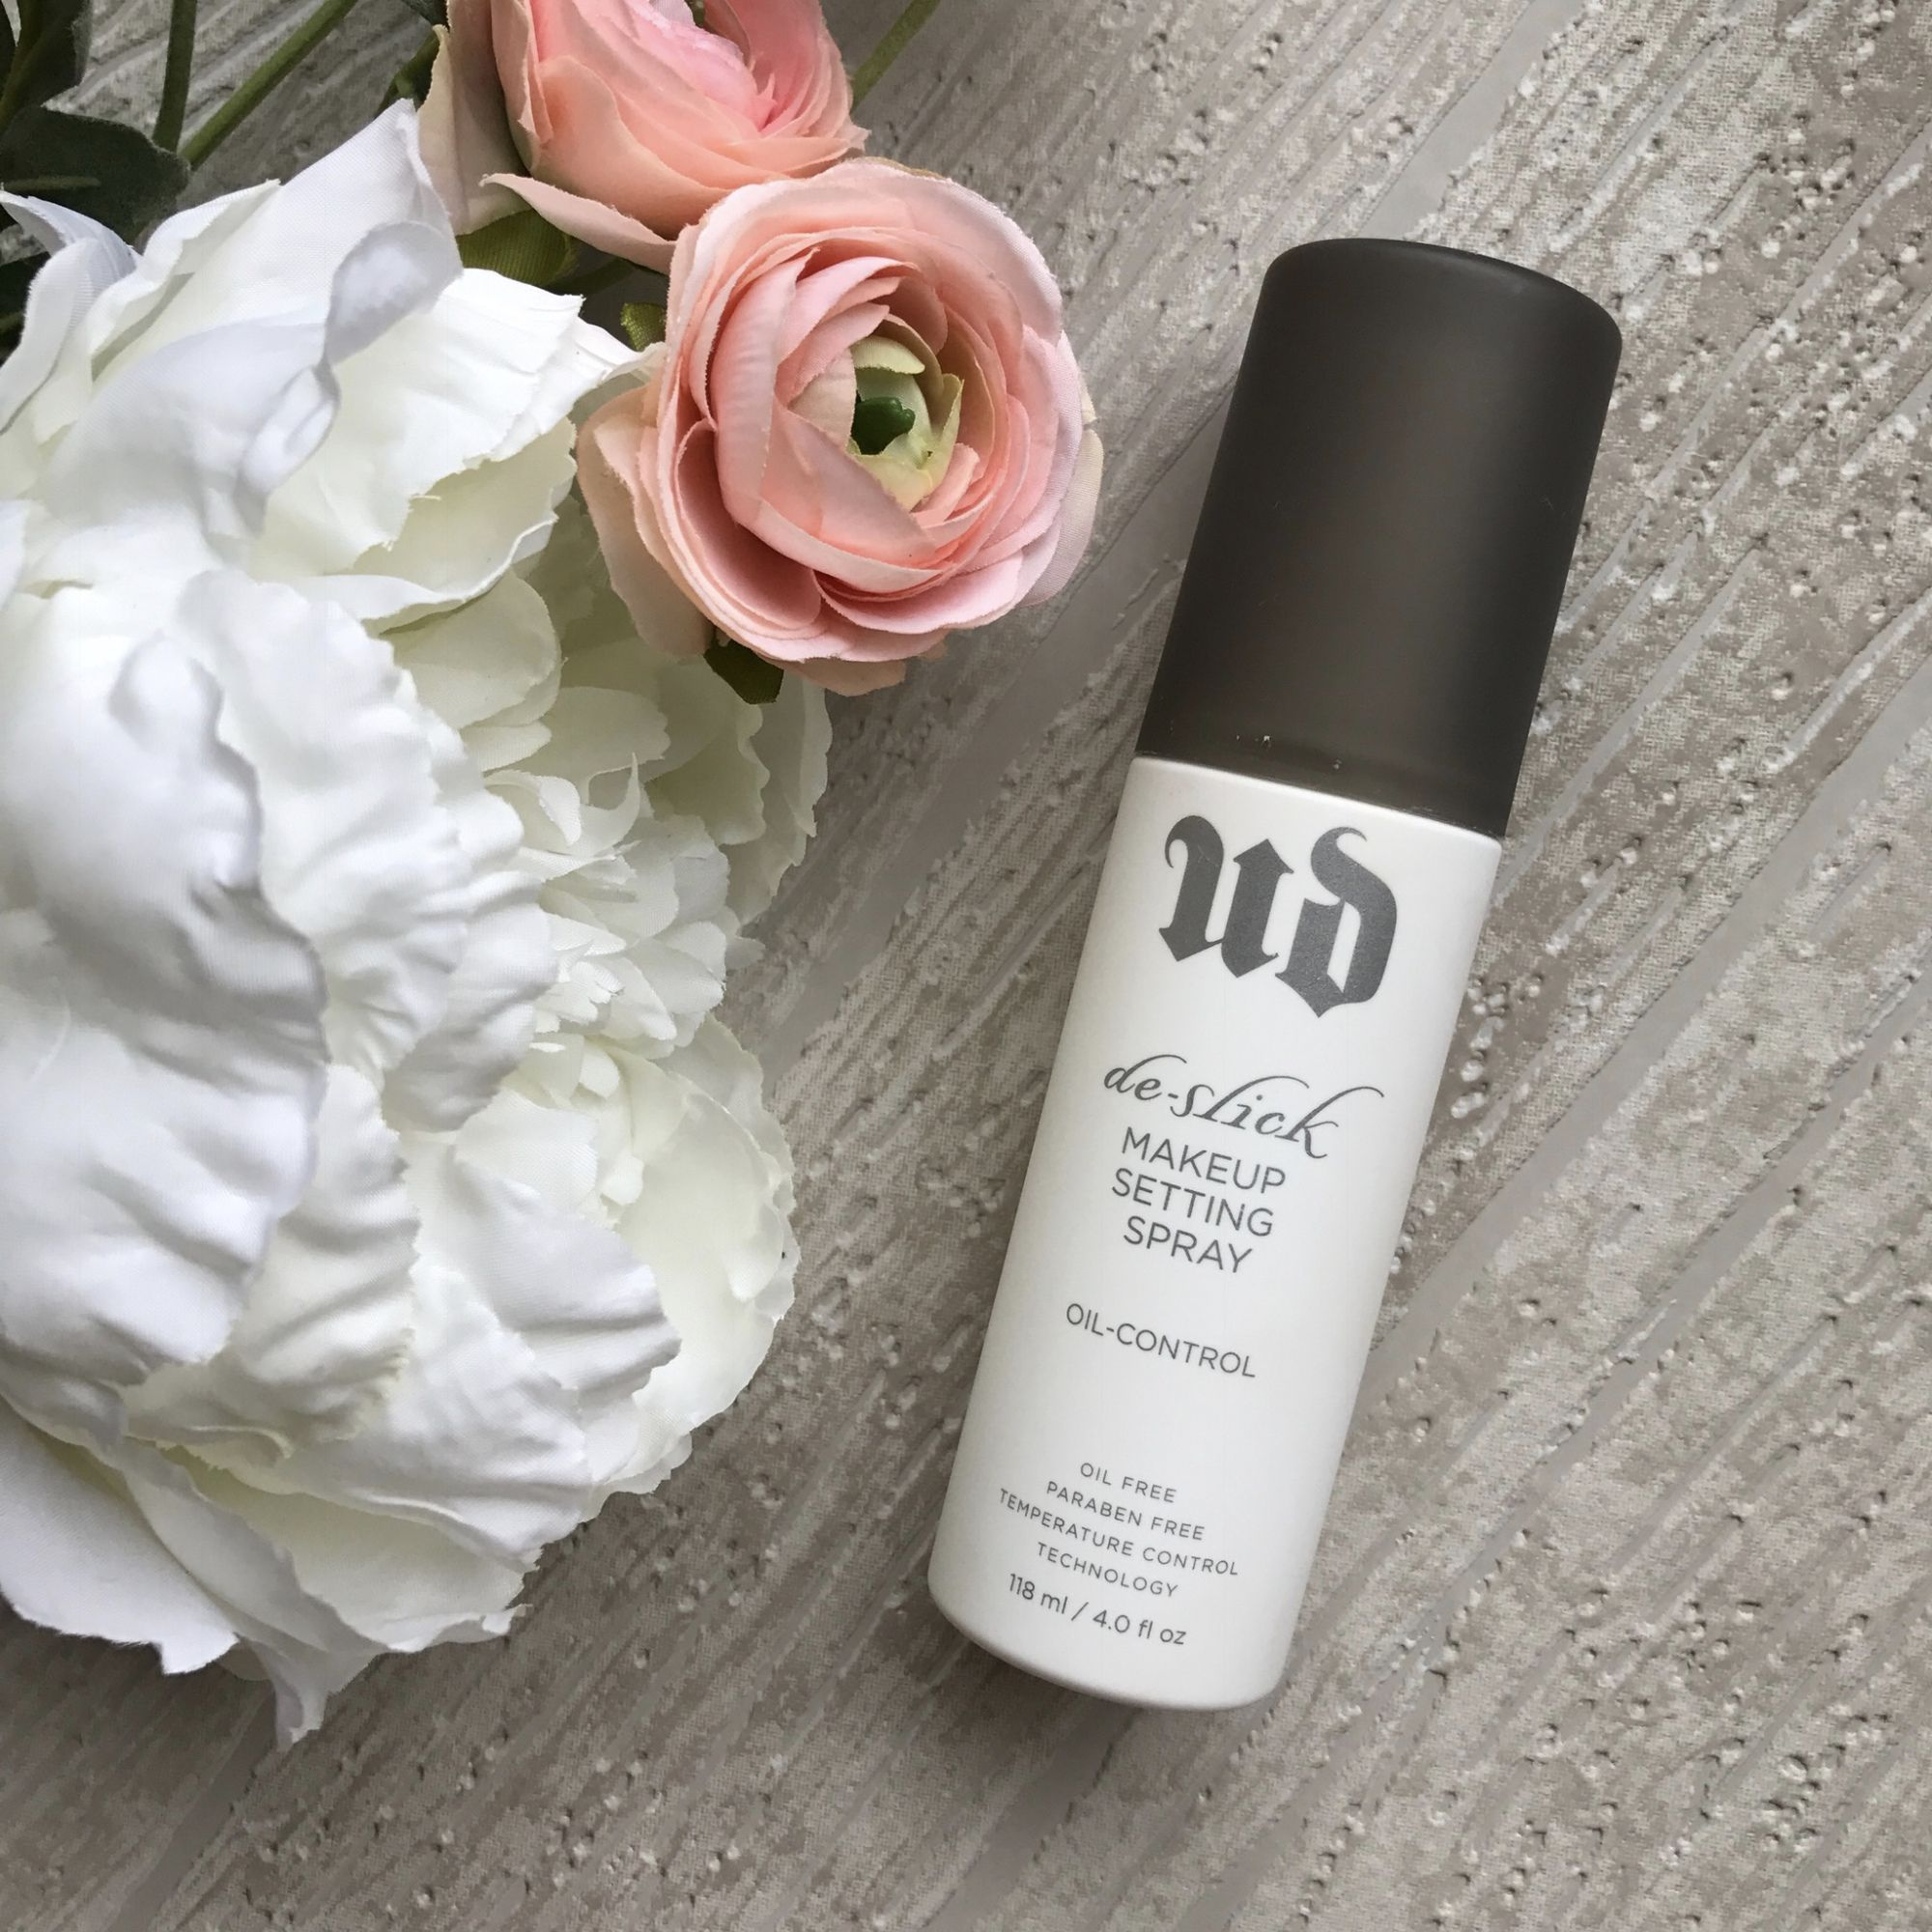 An on-going struggle for me is making my makeup last all day however recently I've come across some new products and tactics that have stopped my face slipping off before 5pm. For me, the mos…